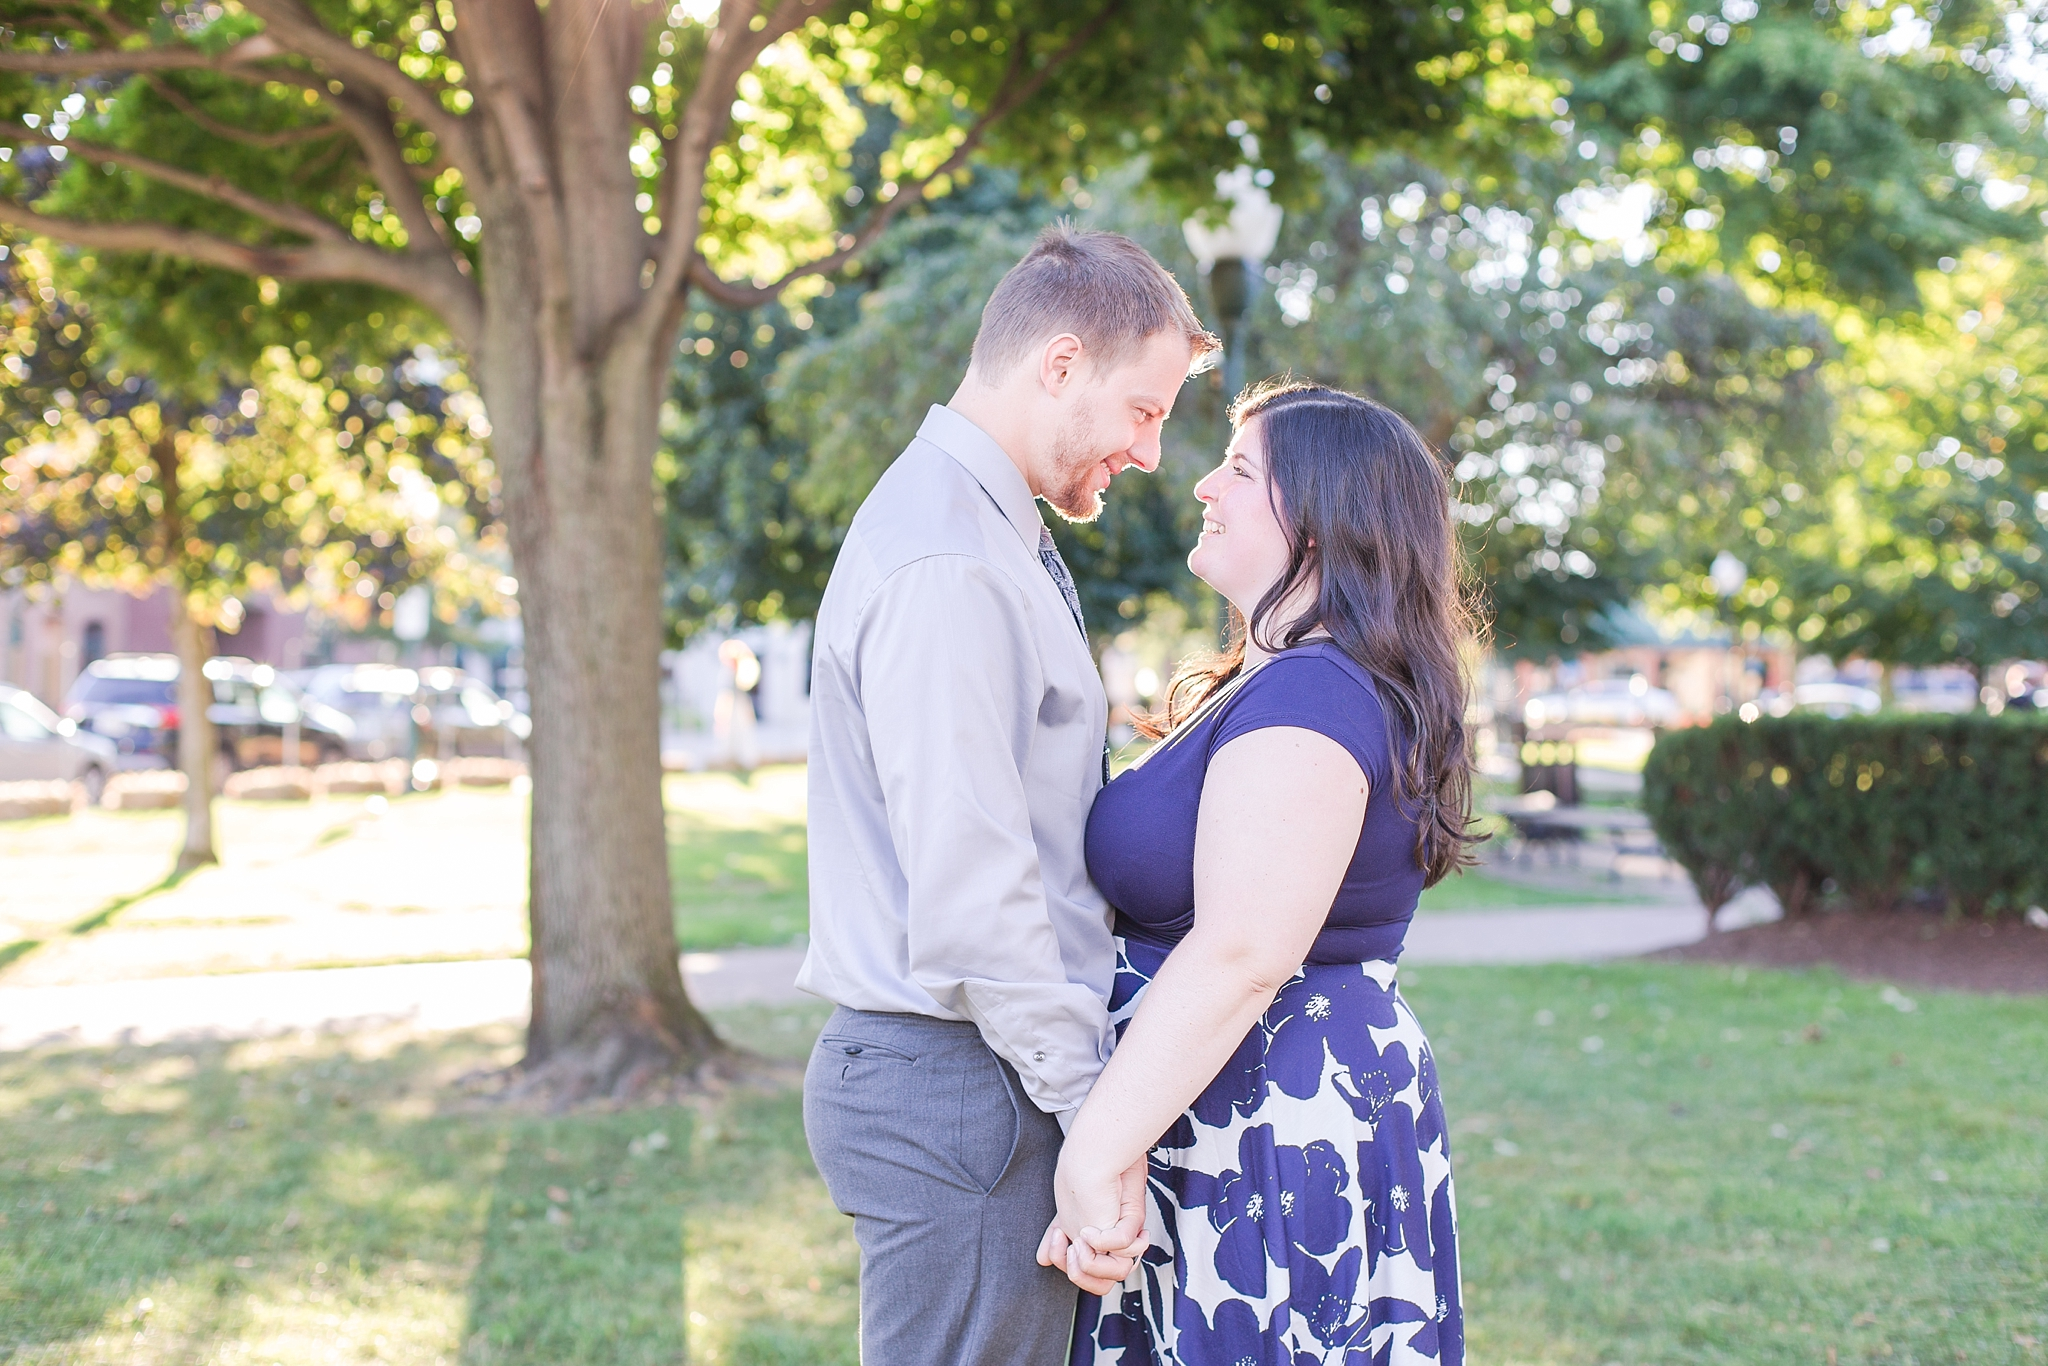 fun-fall-engagement-photos-in-downtown-plymouth-michigan-by-courtney-carolyn-photography_0012.jpg